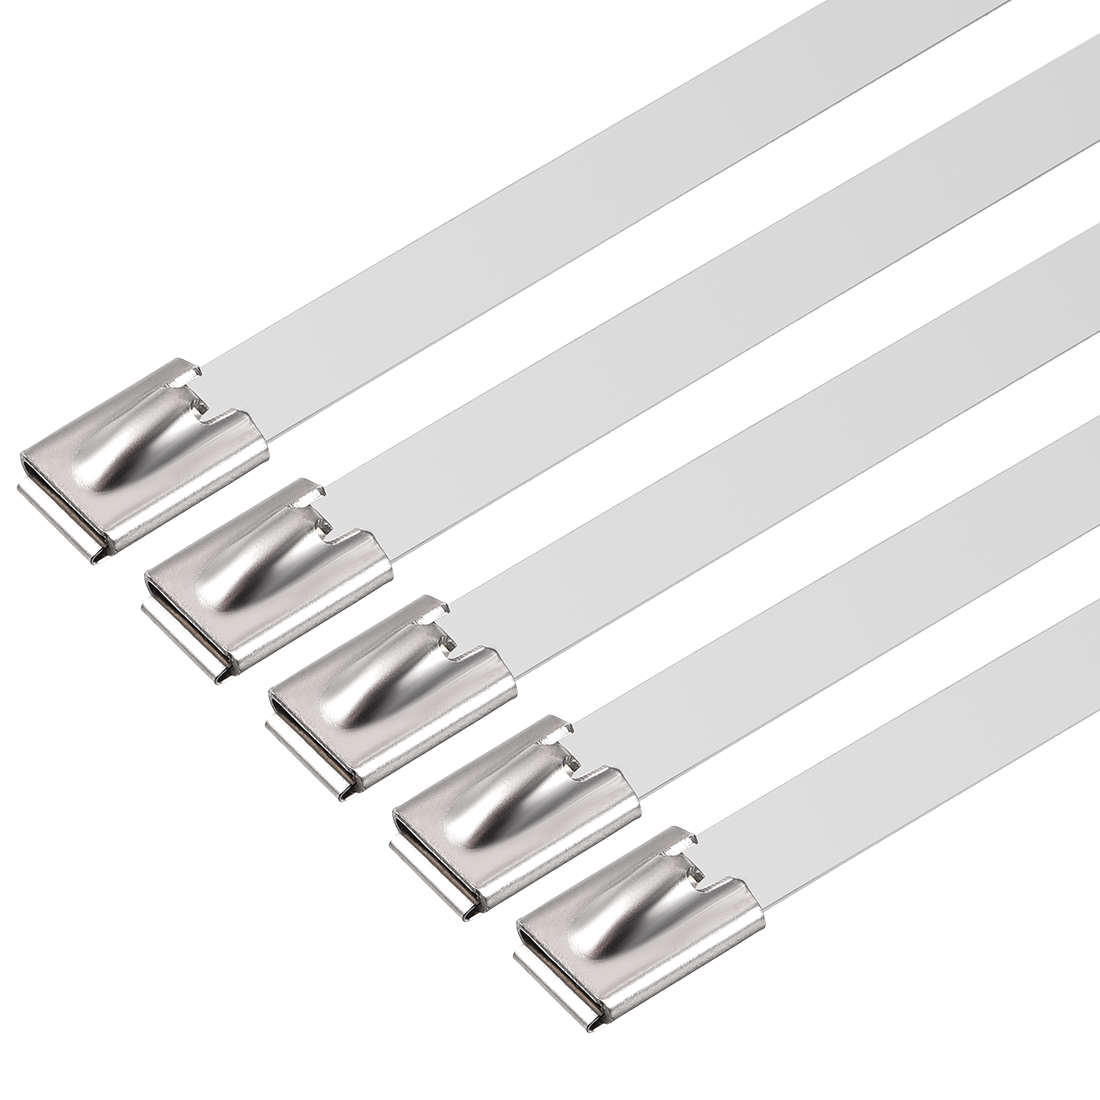 250mmx12mm Stainless Steel Cable Zip Ties Metal Exhaust Wrap 30pcs